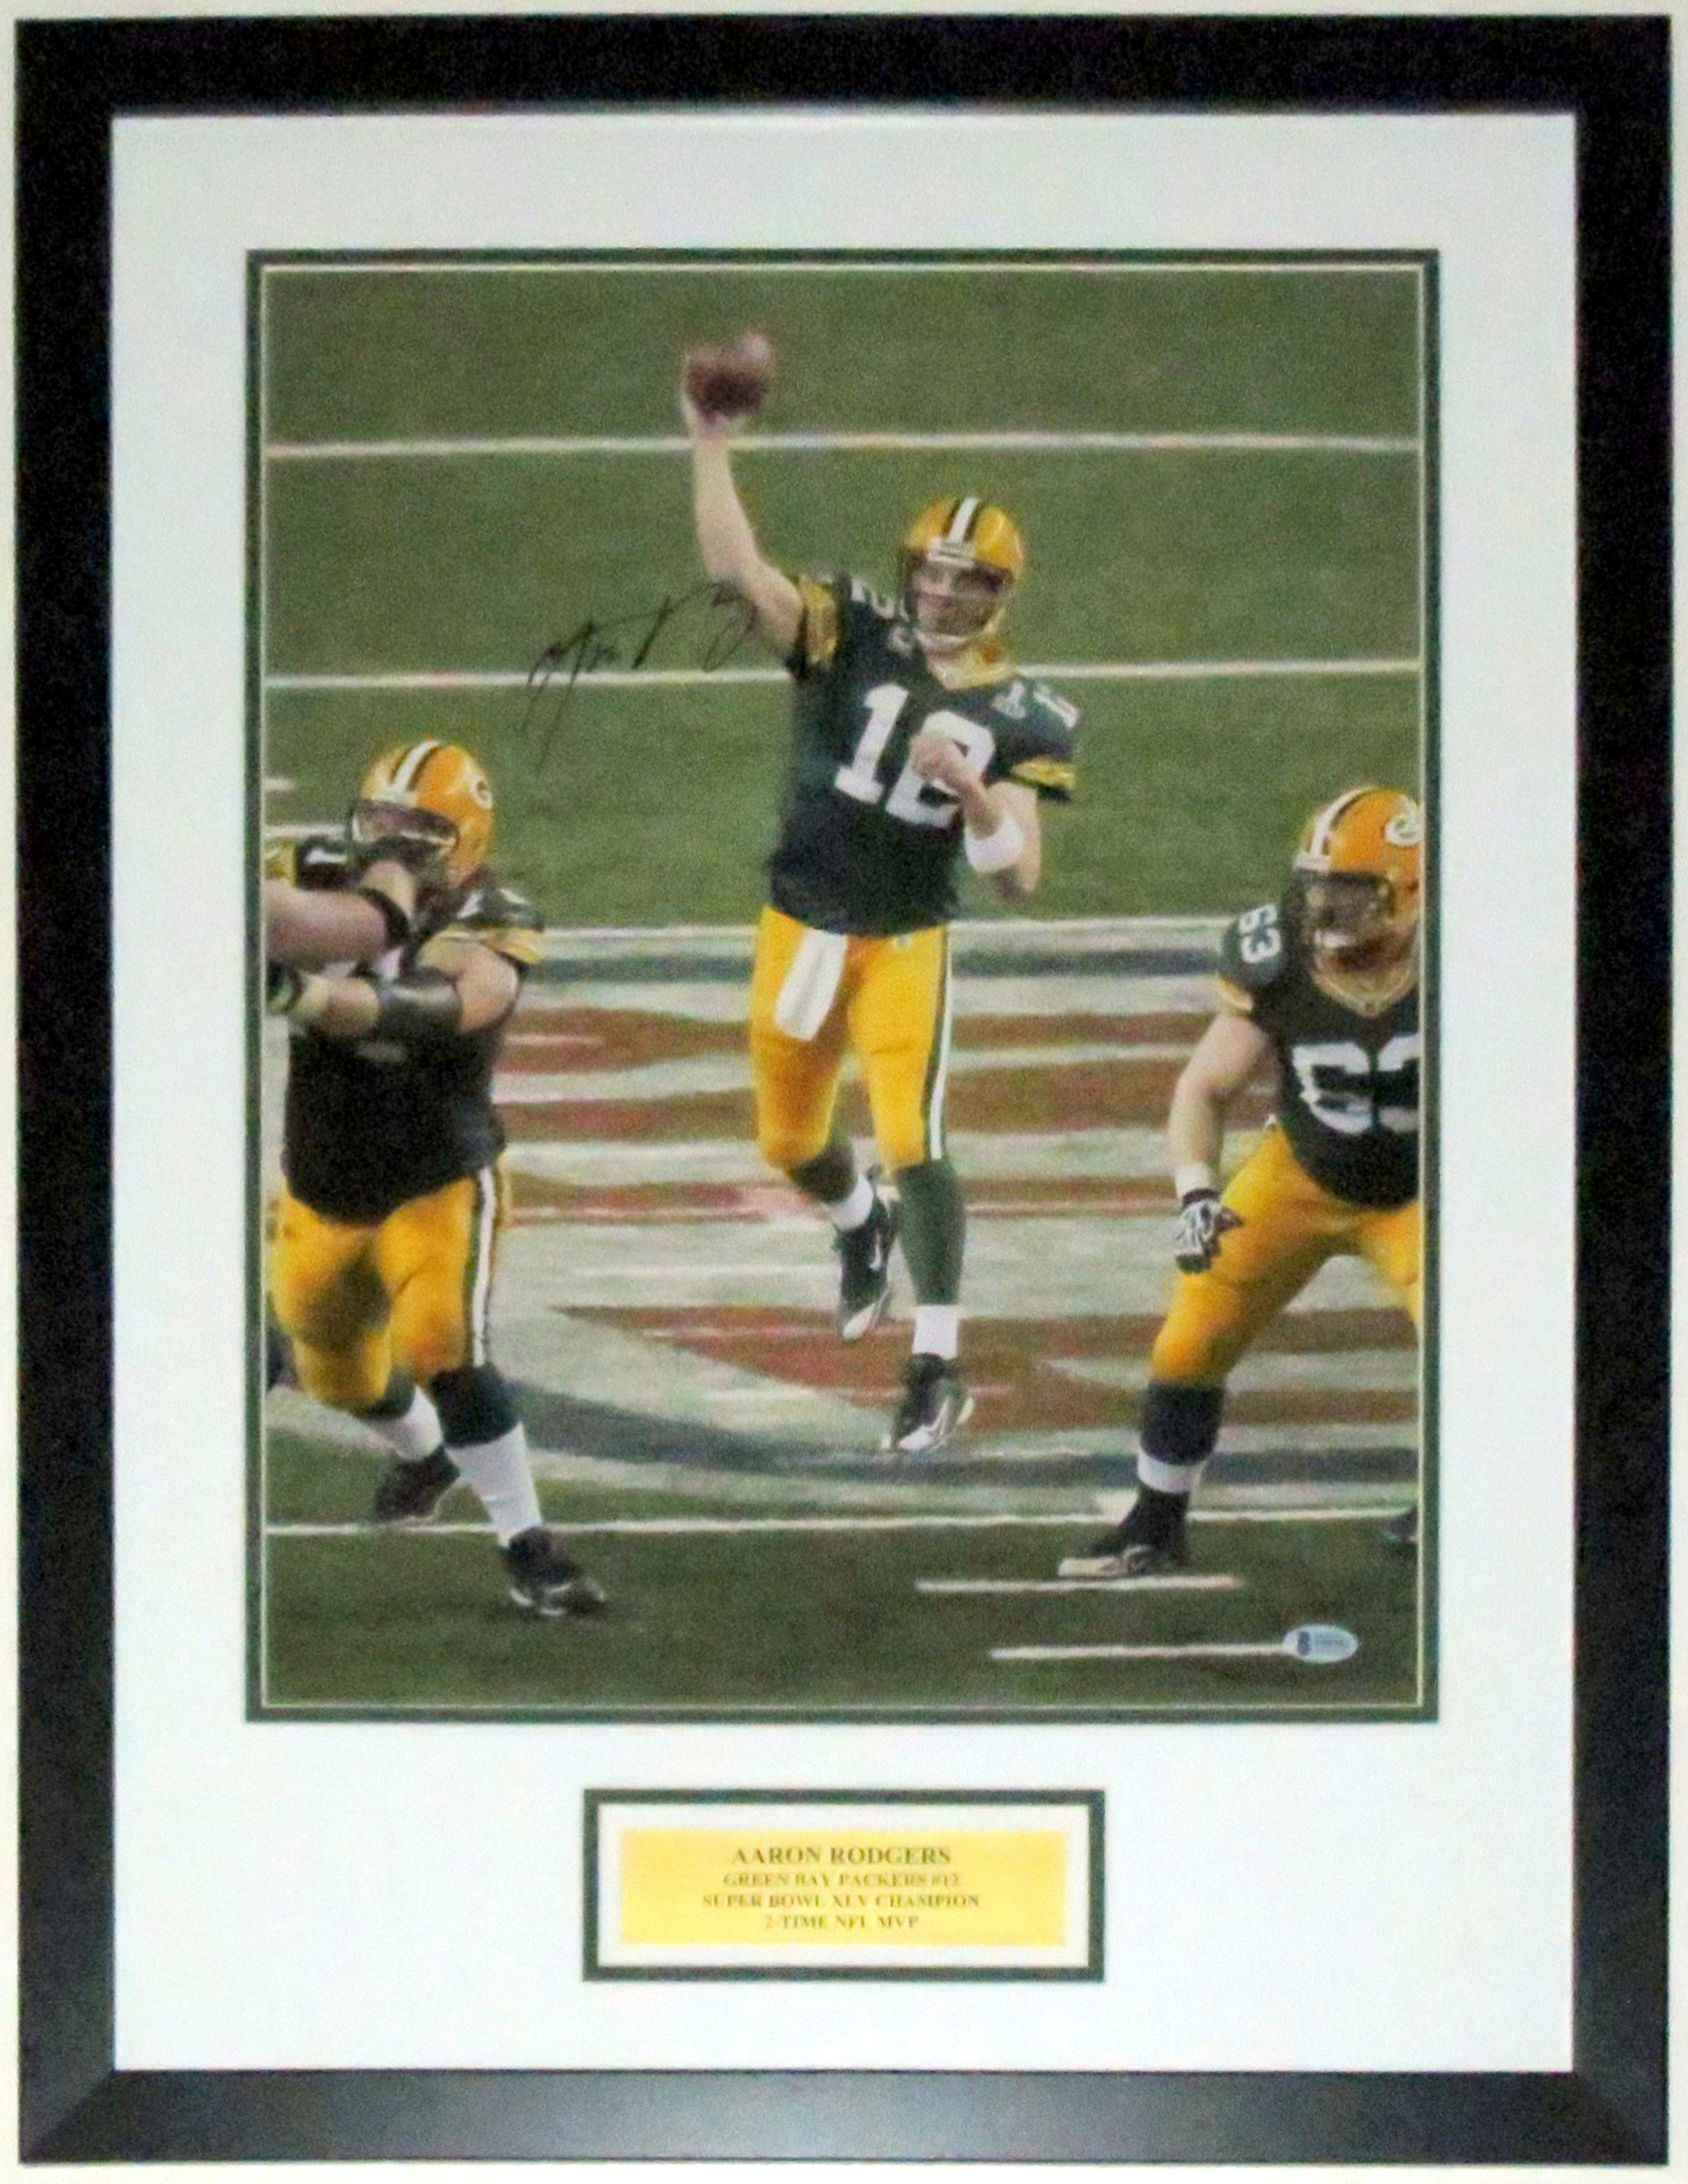 Aaron Rodgers Signed Green Bay Packers Super Bowl XLV 16x20 - Beckett Authentication Services COA Authenticated - Professionally Framed & Plate